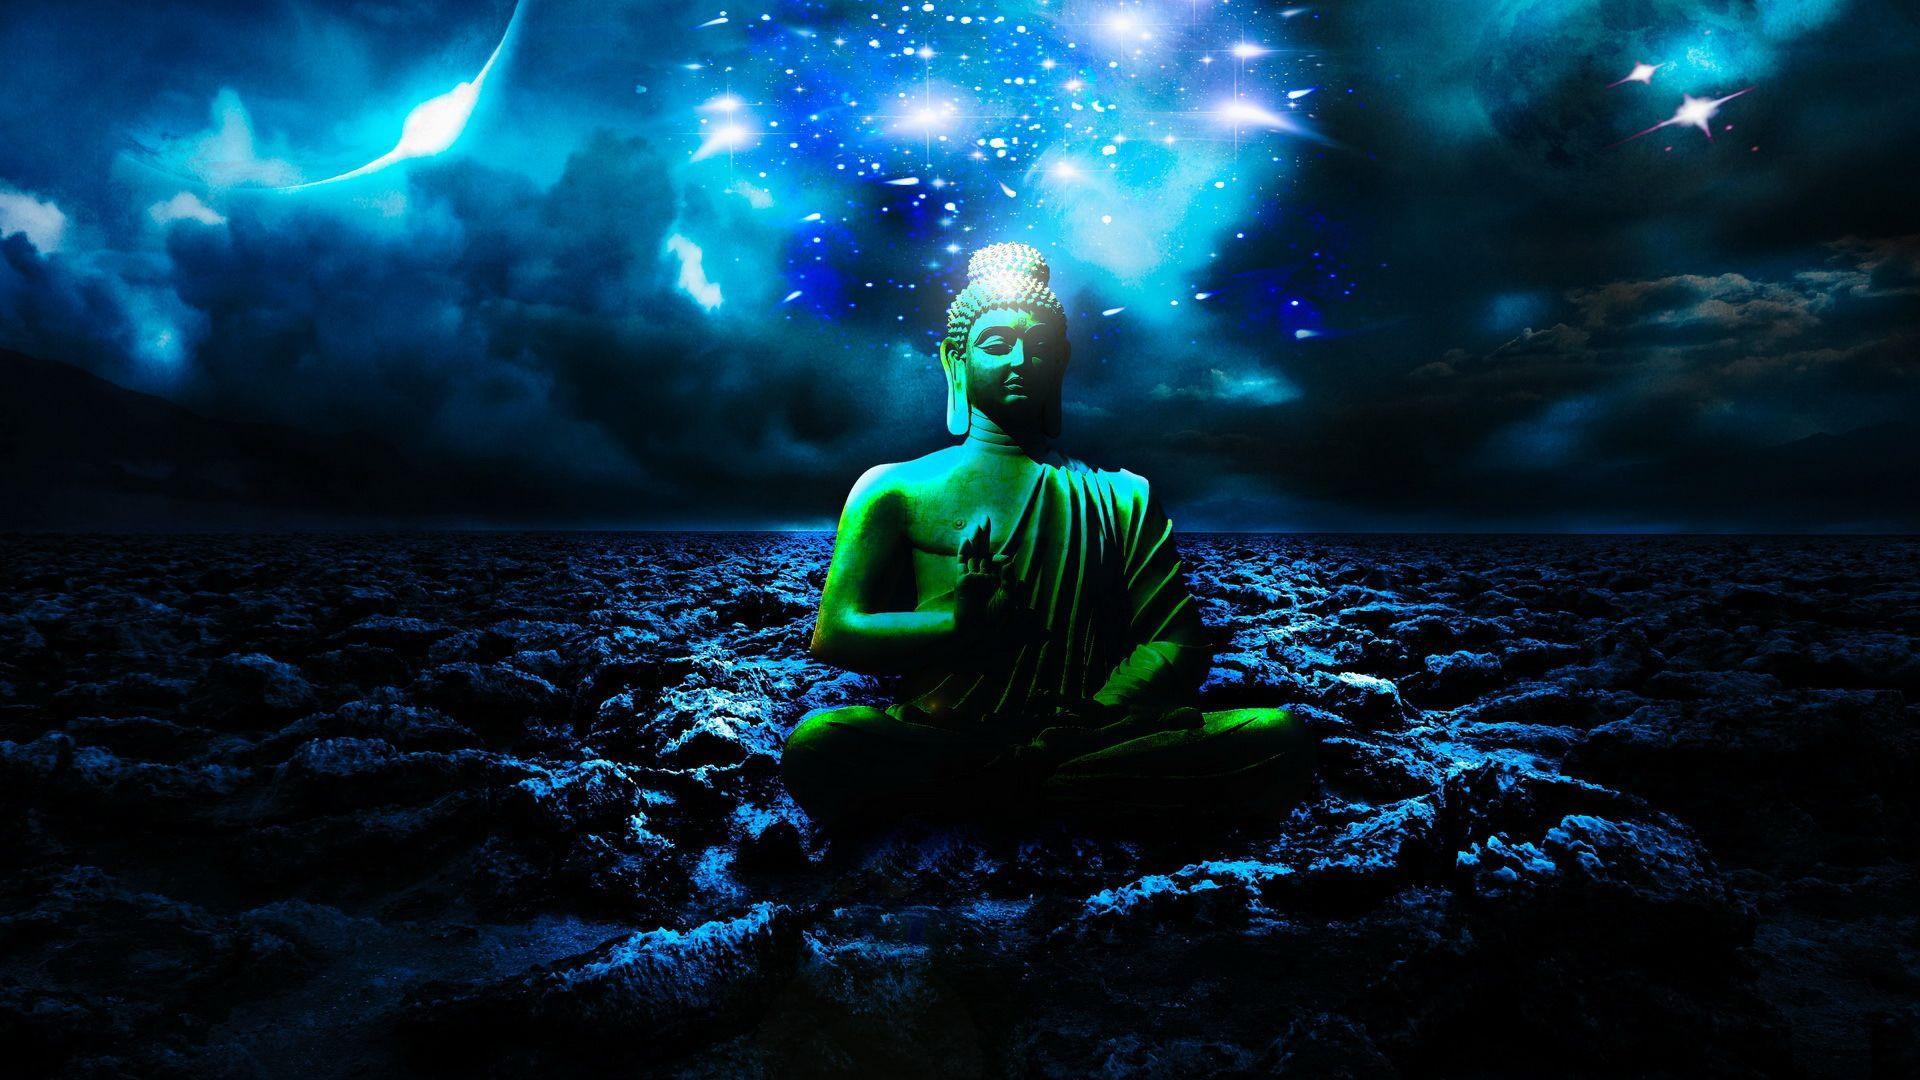 Buddha Meditation Wallpaper Photo px MB Other android art buddha wallpapers  chakra gallery hd inner peace iphone monk peace and serenity universe  widescreen …